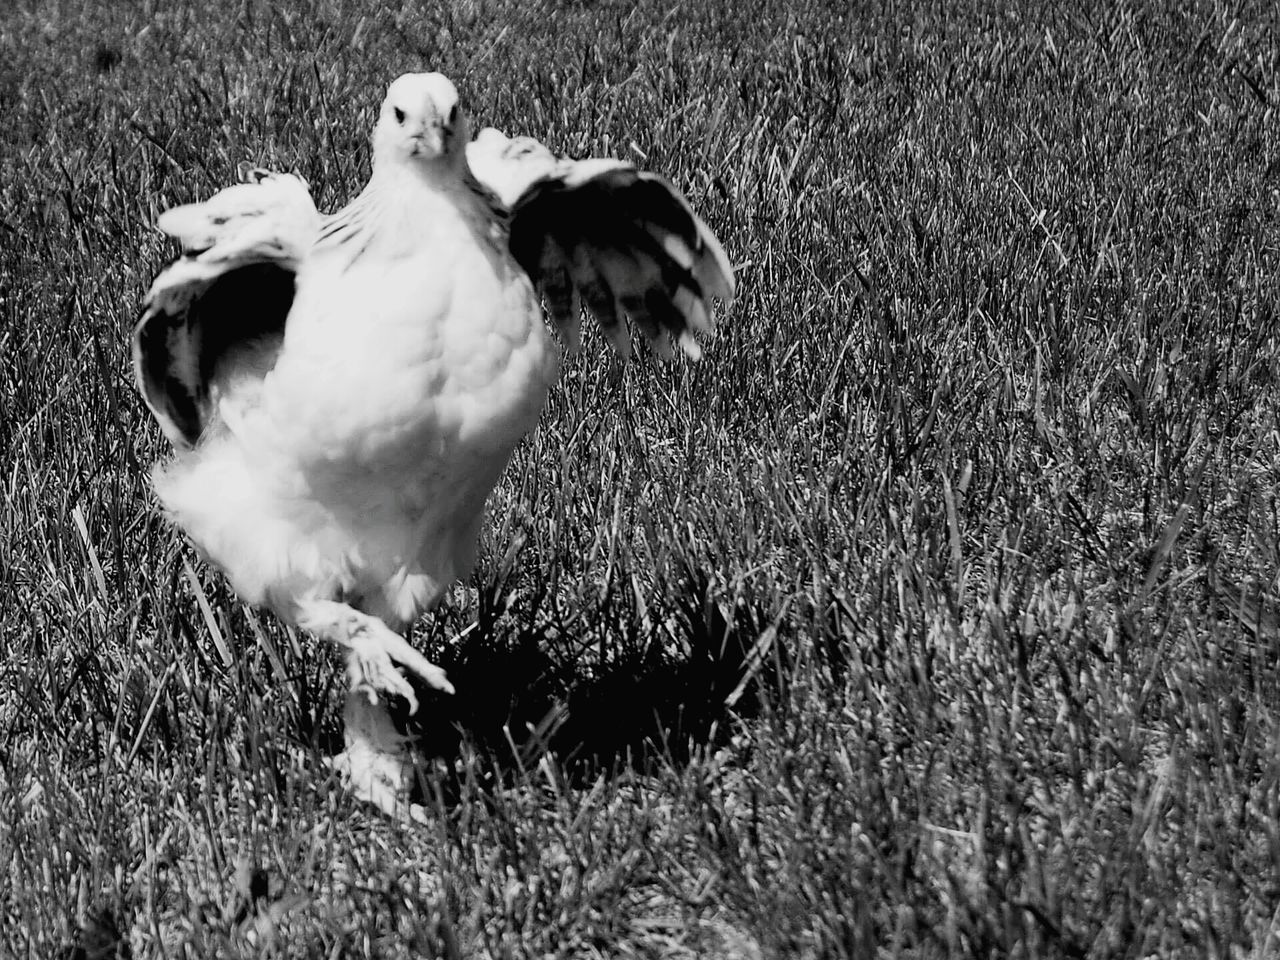 animal themes, bird, one animal, animals in the wild, grass, field, animal wildlife, nature, no people, day, outdoors, spread wings, full length, domestic animals, perching, close-up